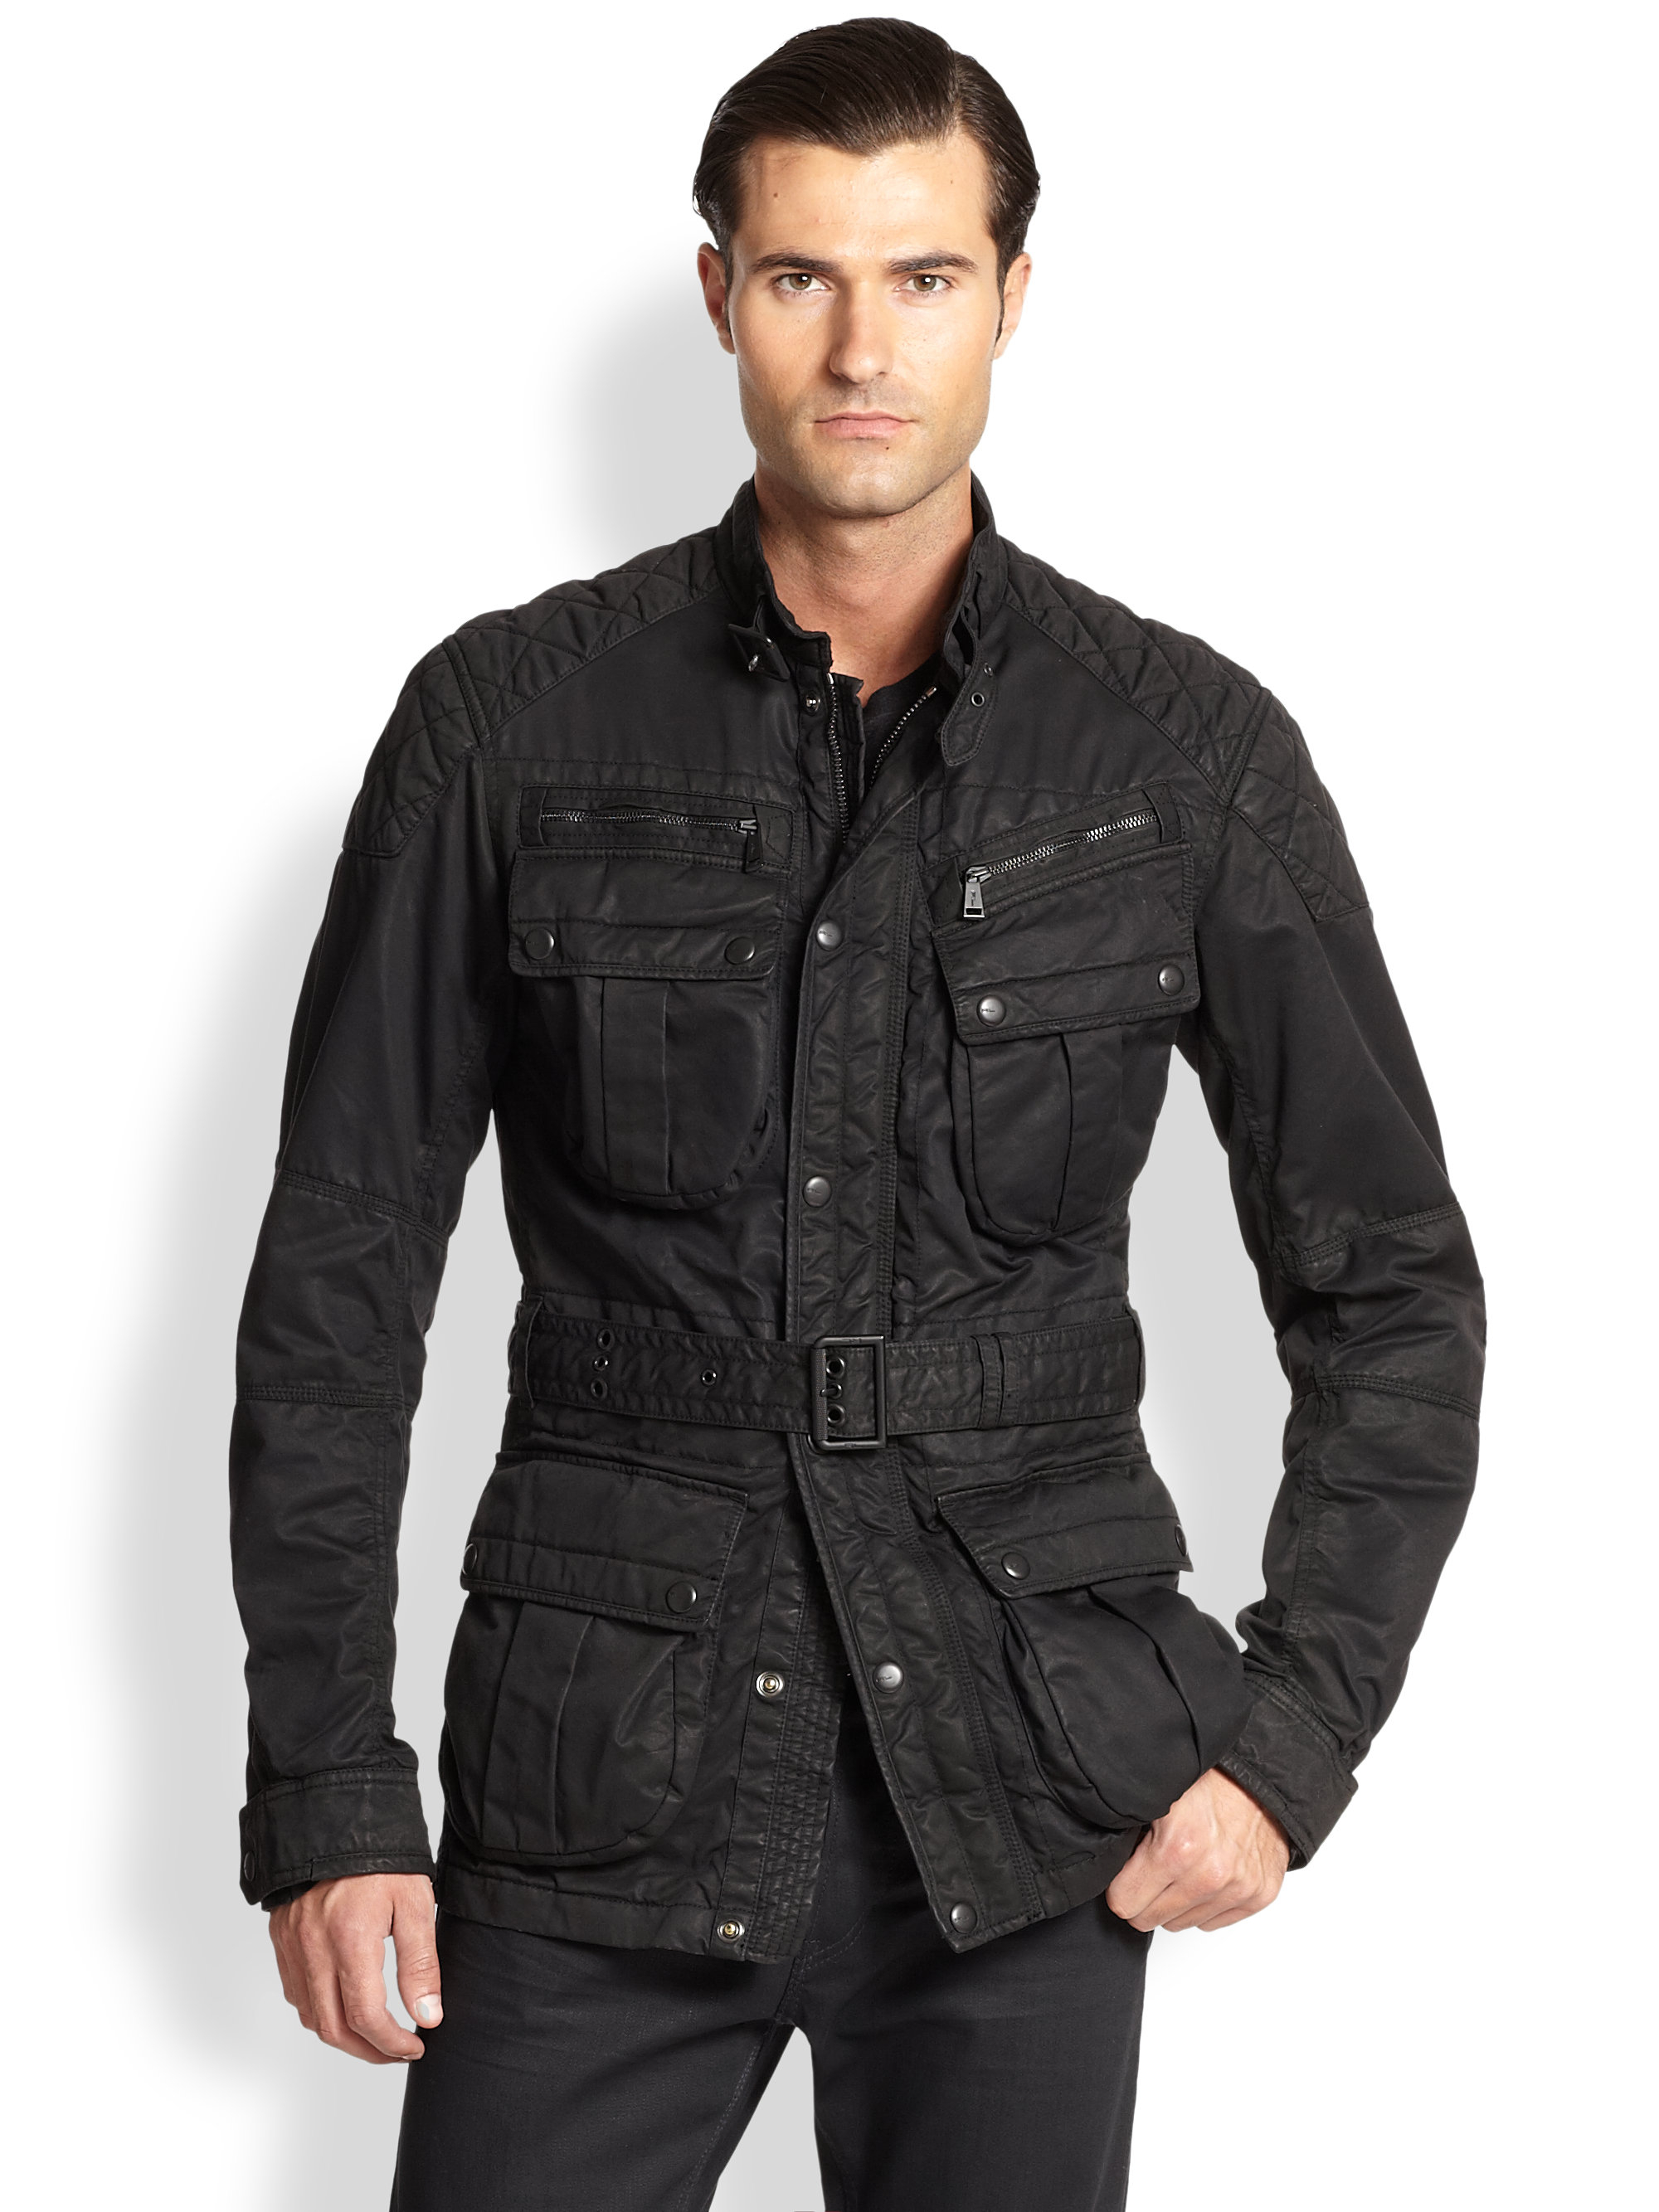 Ralph Lauren Black Label Suspension 4 Pocket Jacket In